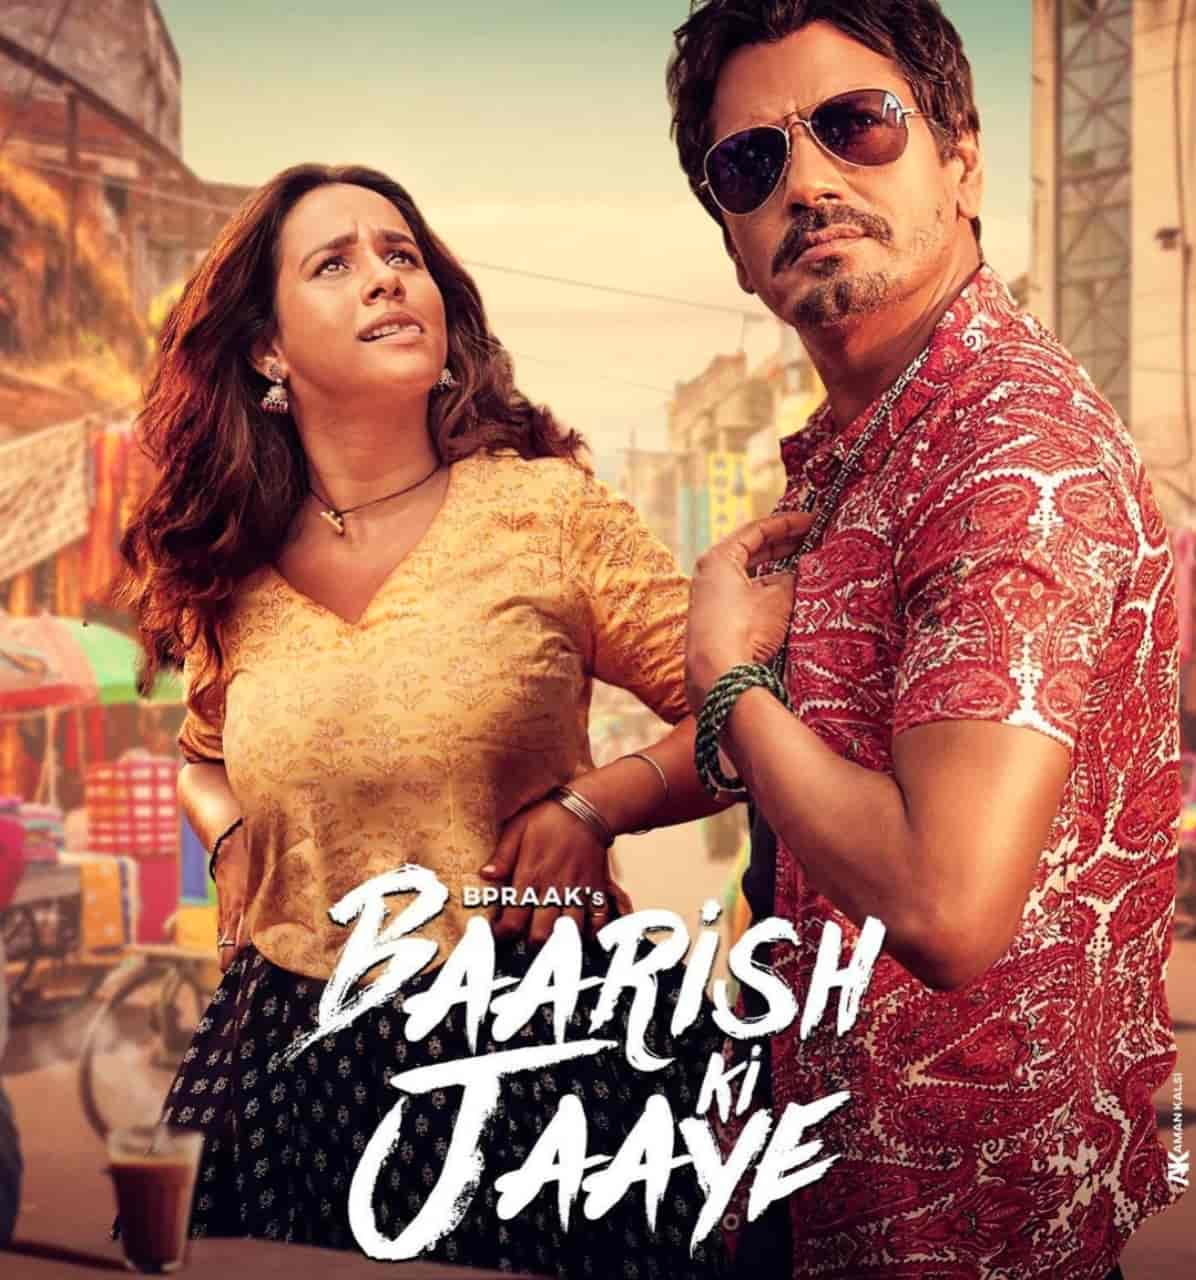 Mera Yaar Hans Raha Hai Baarish Ki Jaaye Lyrics B Praak